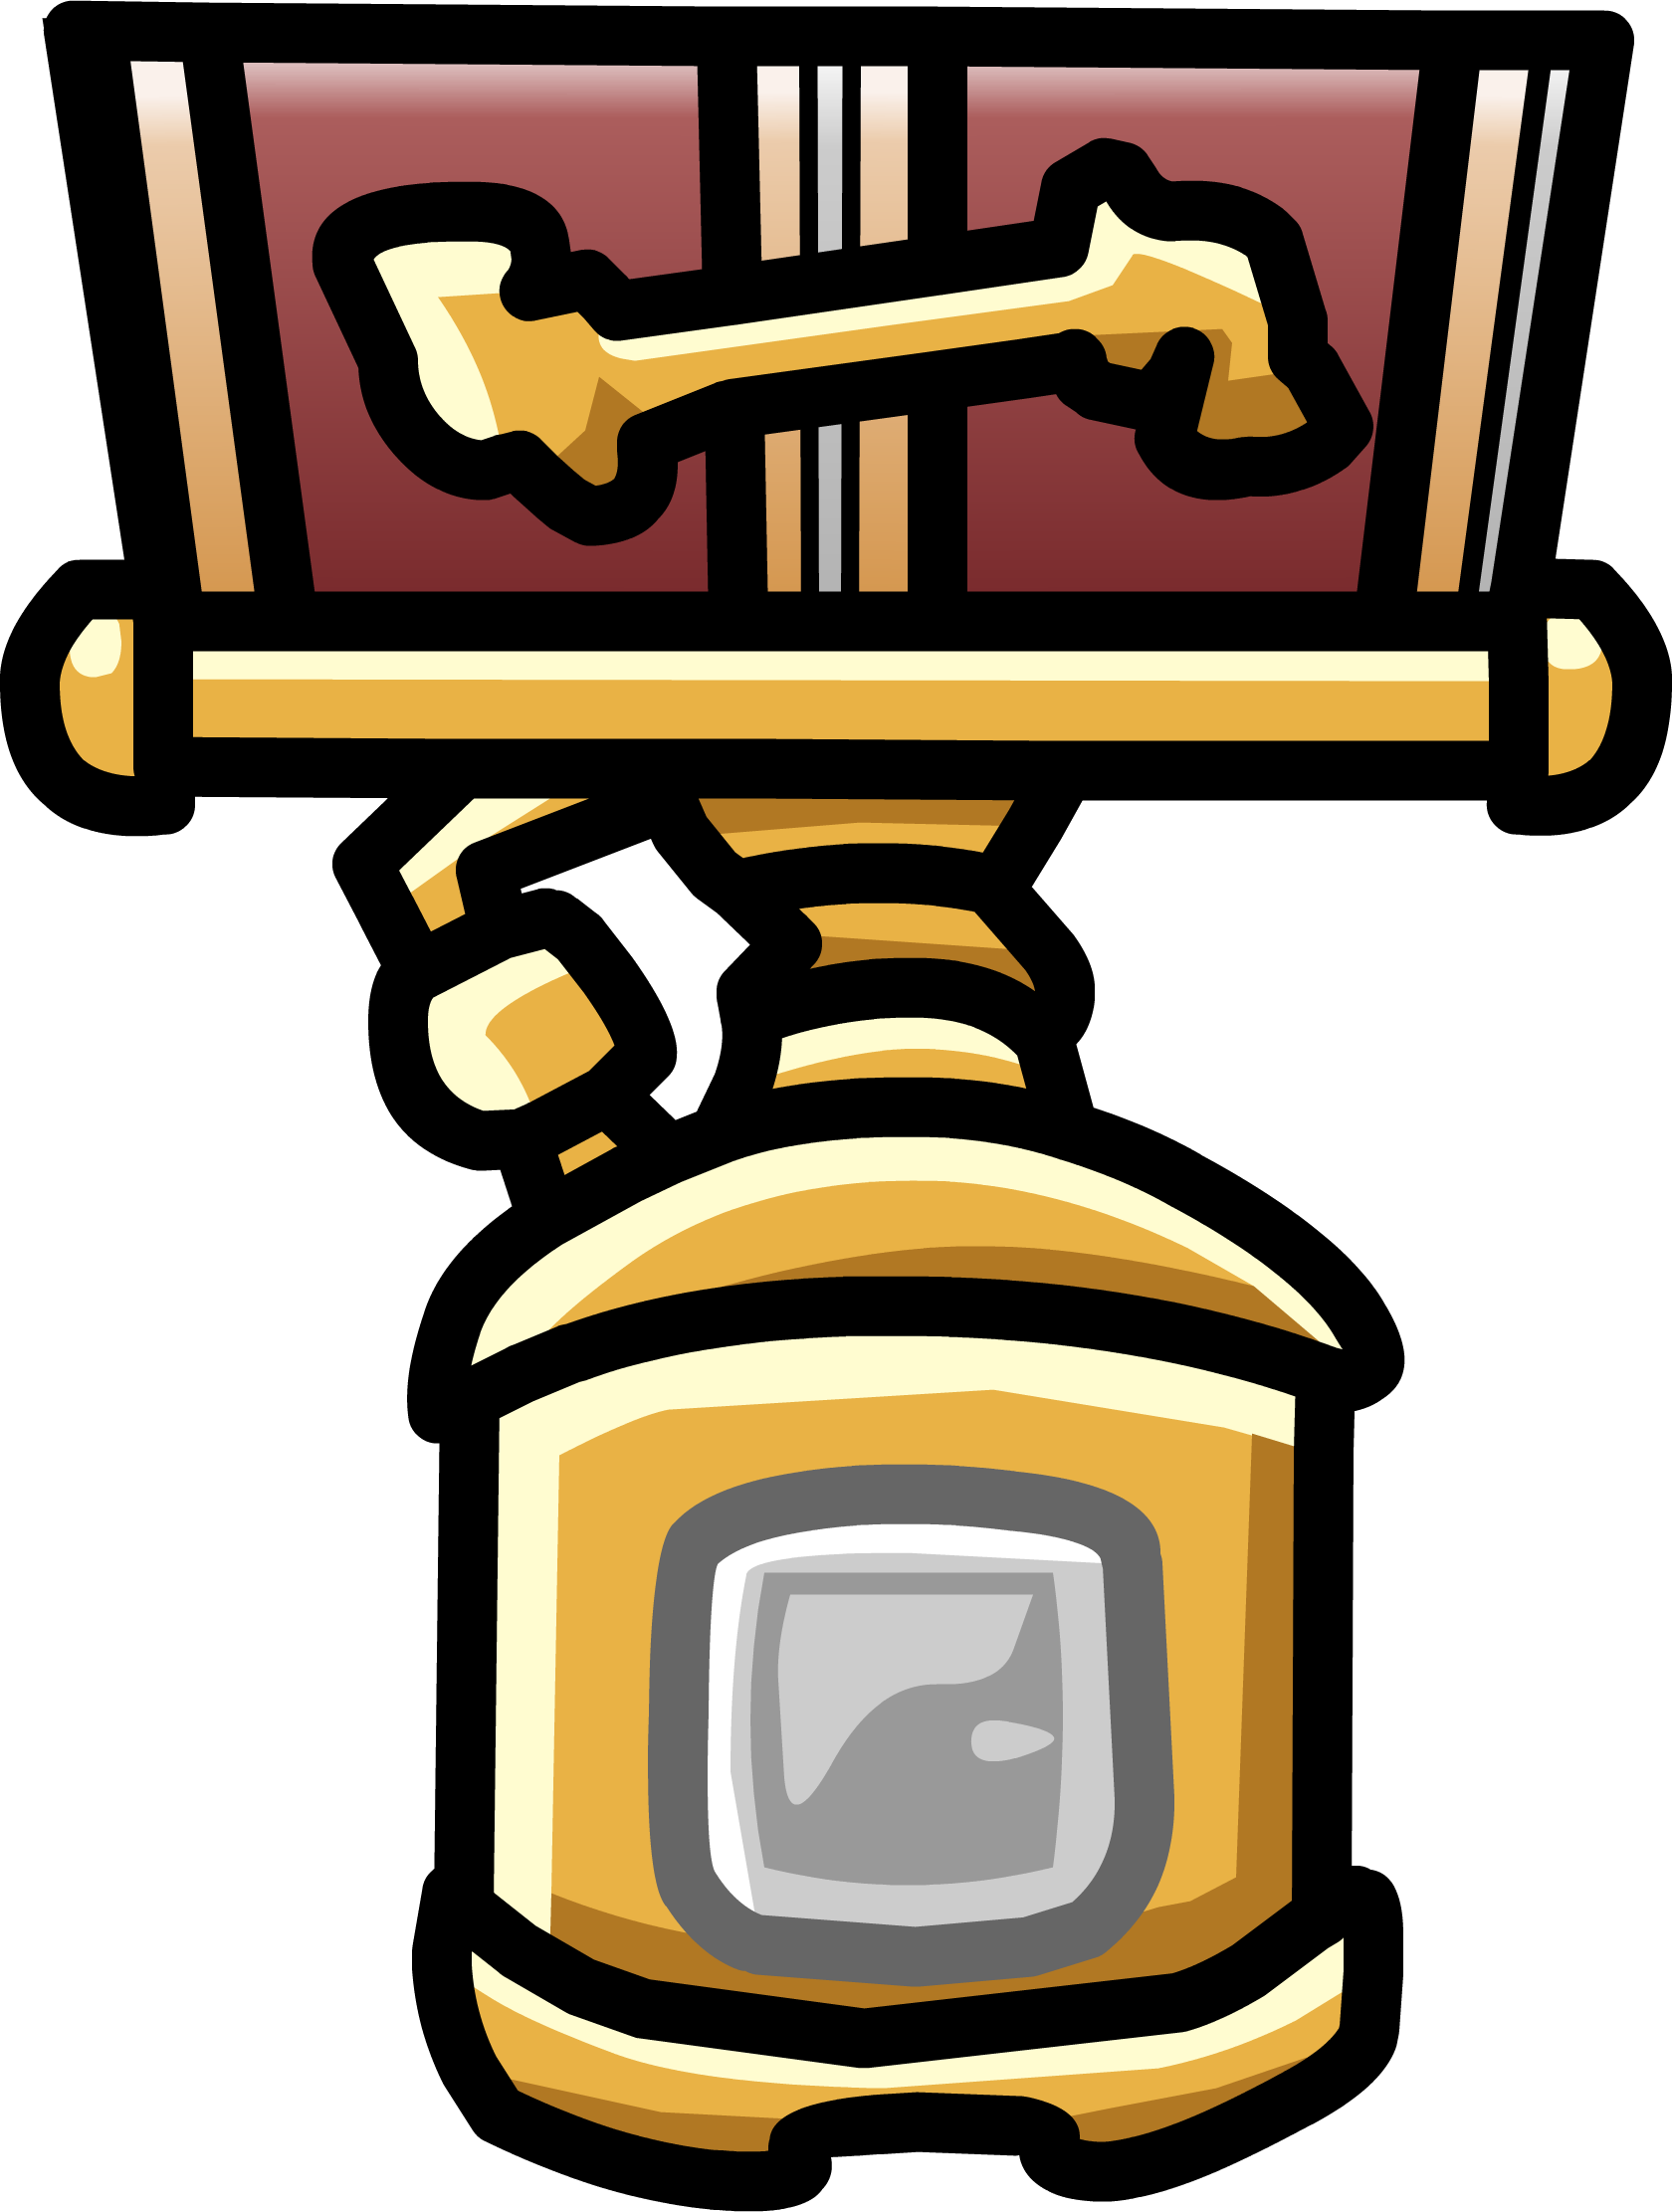 Mission medal club penguin. Missions clipart official stamp